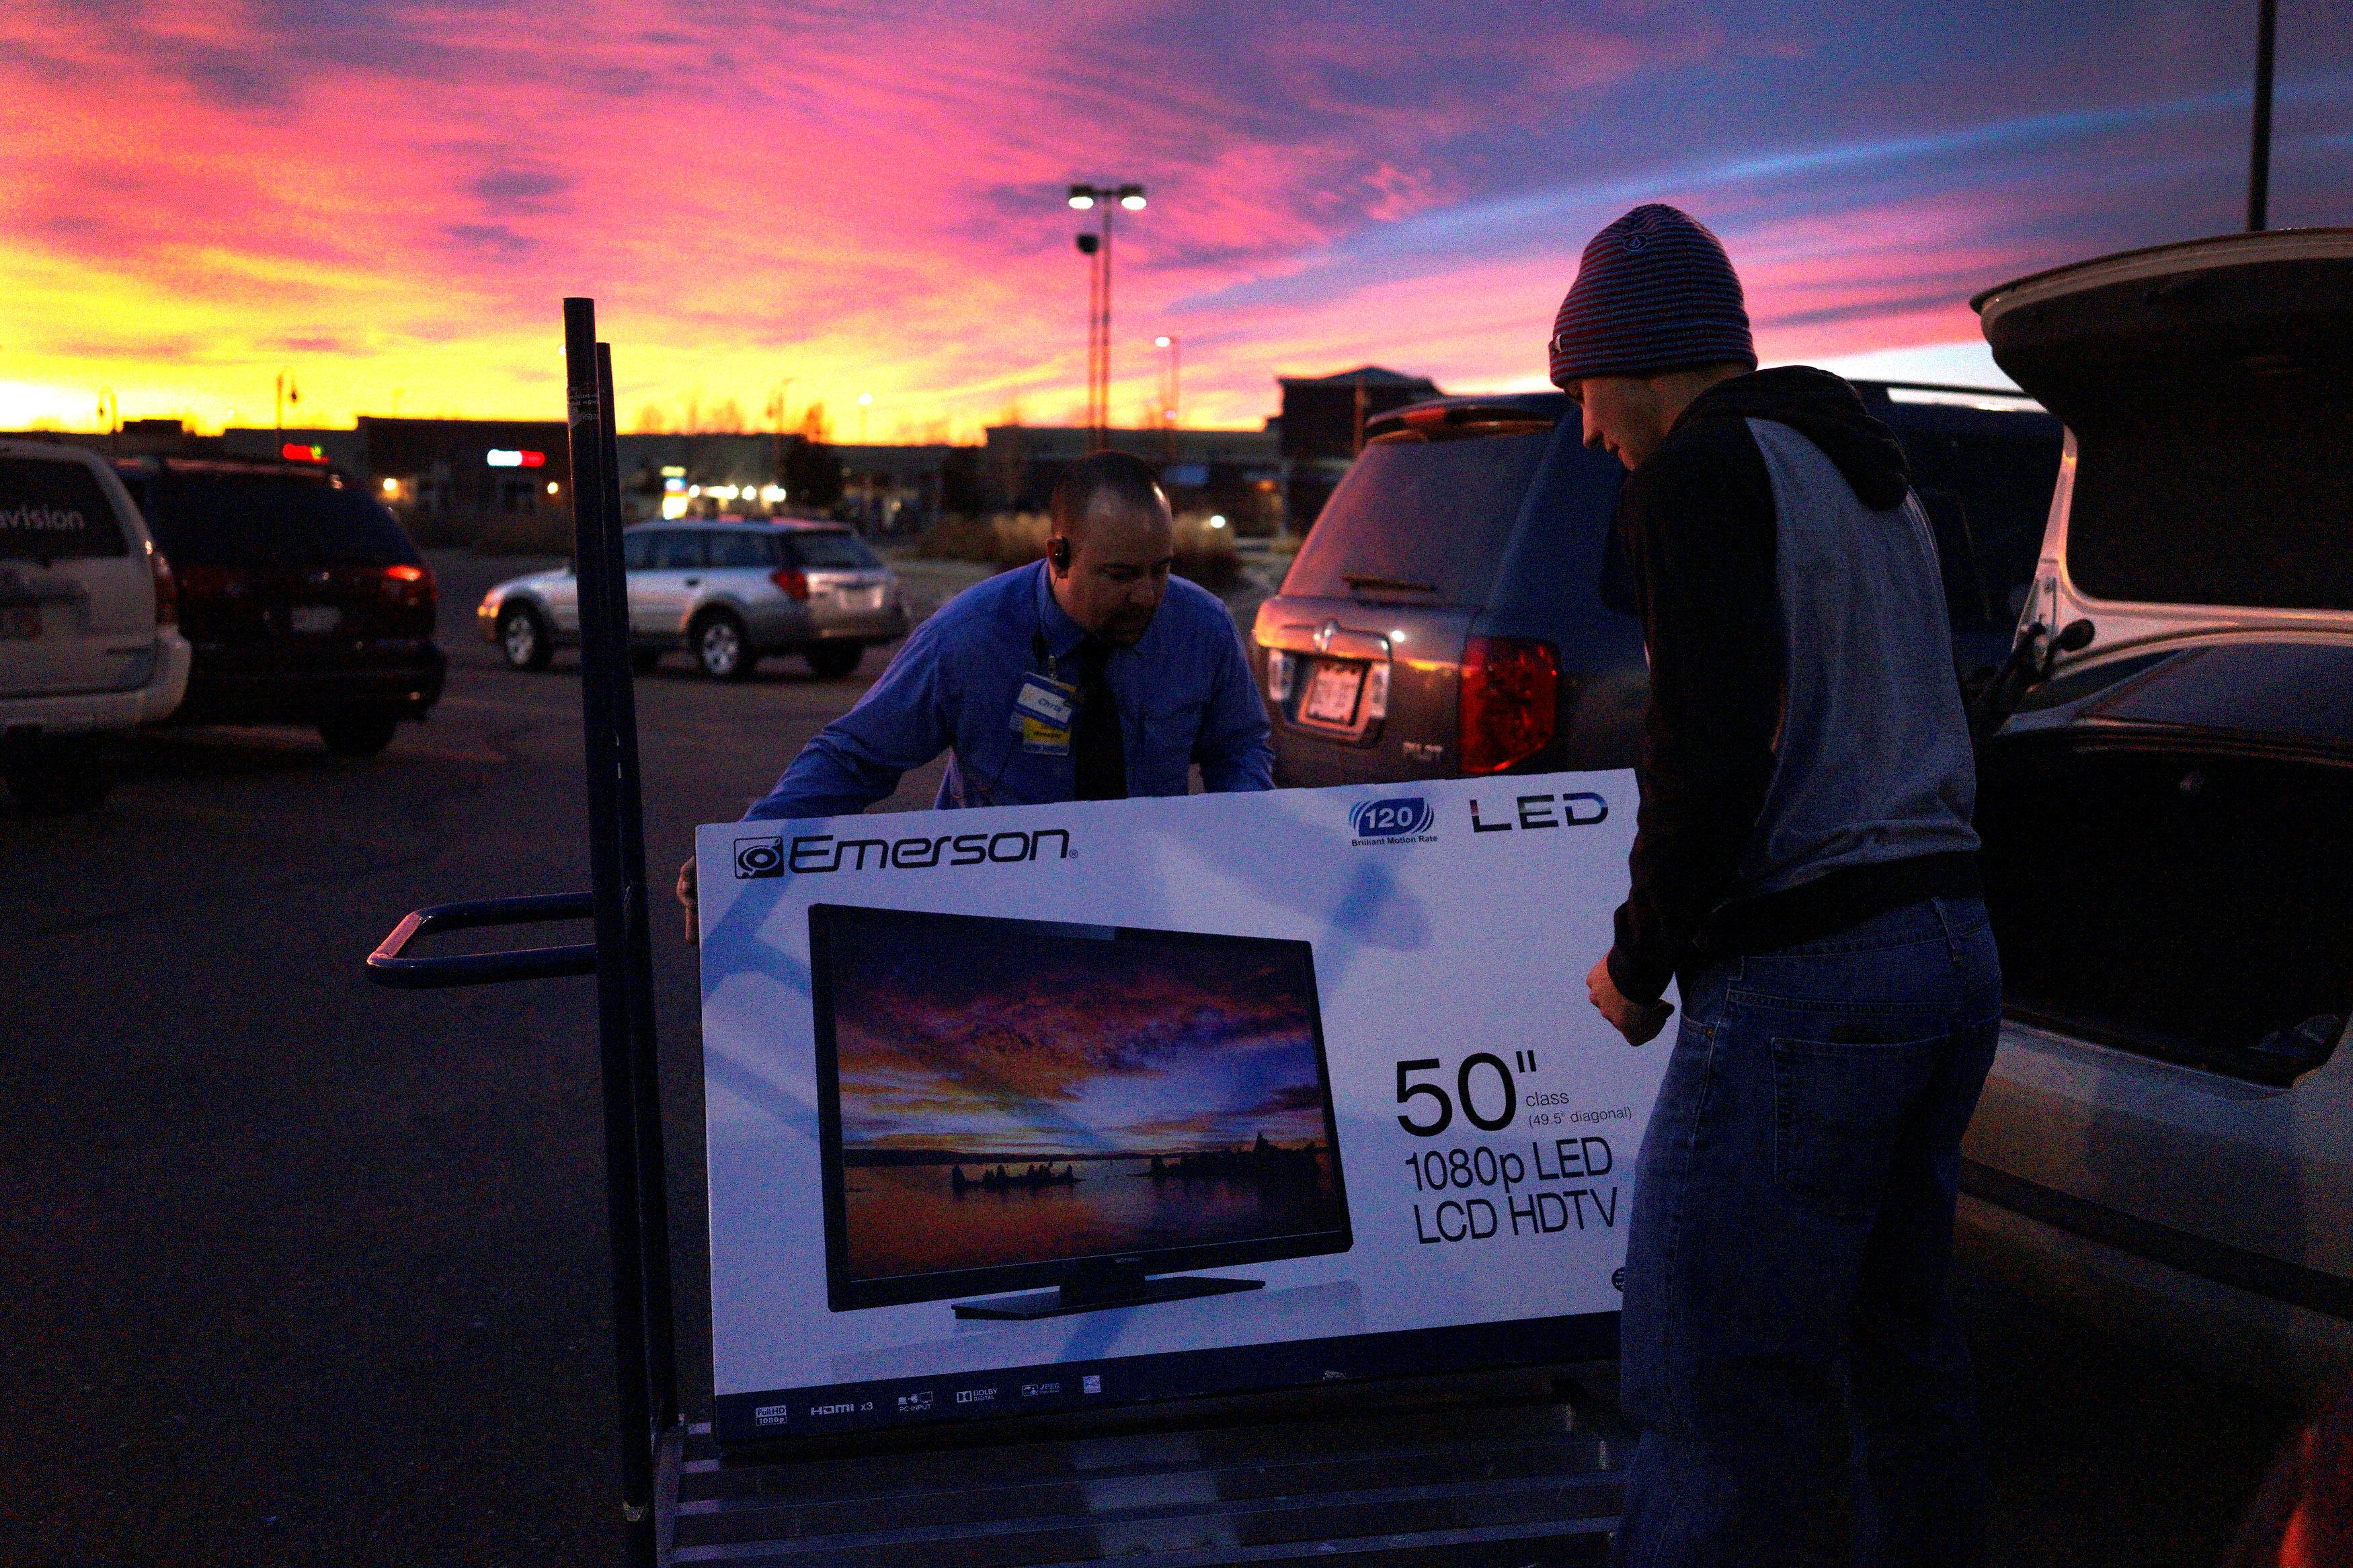 A Walmart employee helps a customer load a 50